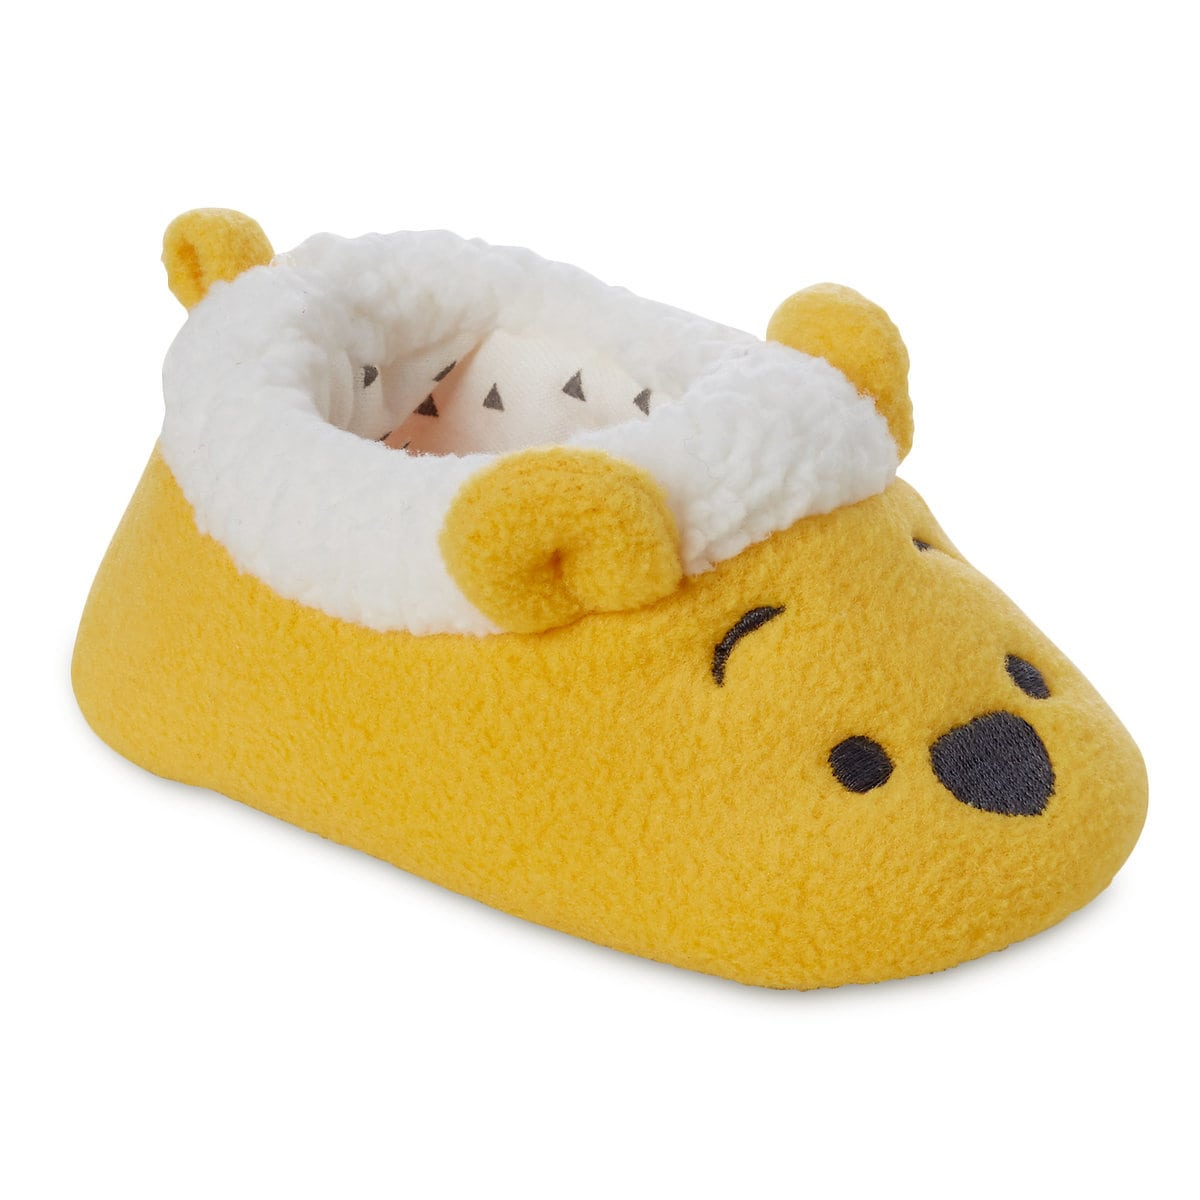 cd36b5a6aa87 Product Image of Winnie the Pooh Slippers for Baby   1